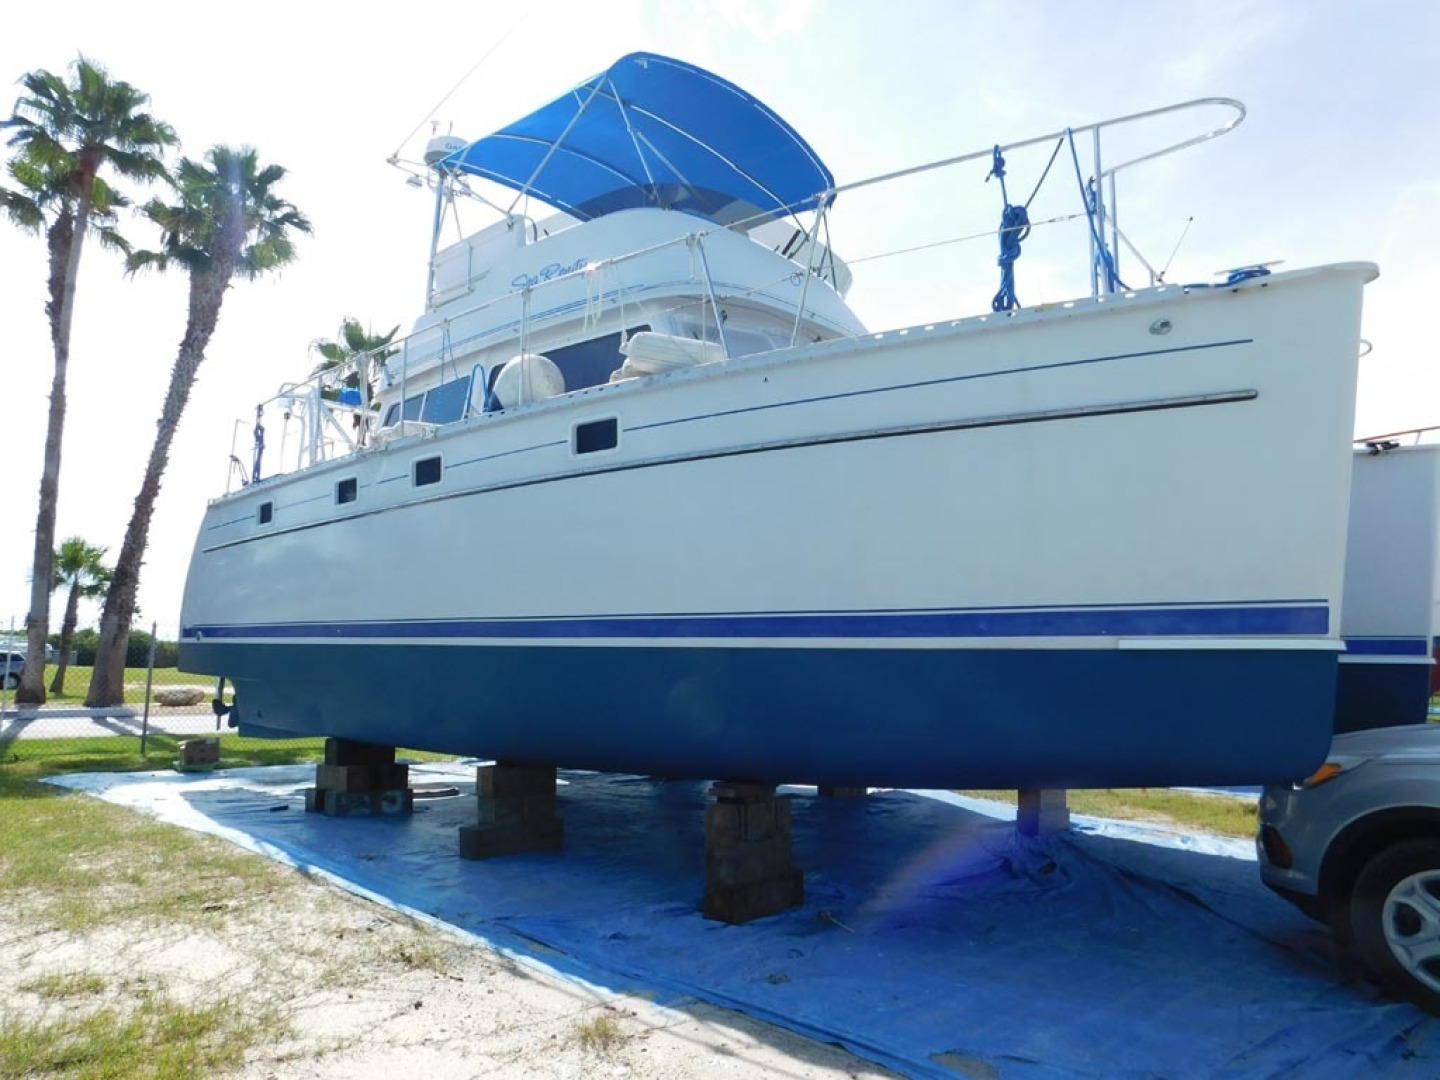 PDQ-Passage Maker 2005-Sea Renity Cocoa Beach-Florida-United States-Starboard Hull-1468282 | Thumbnail